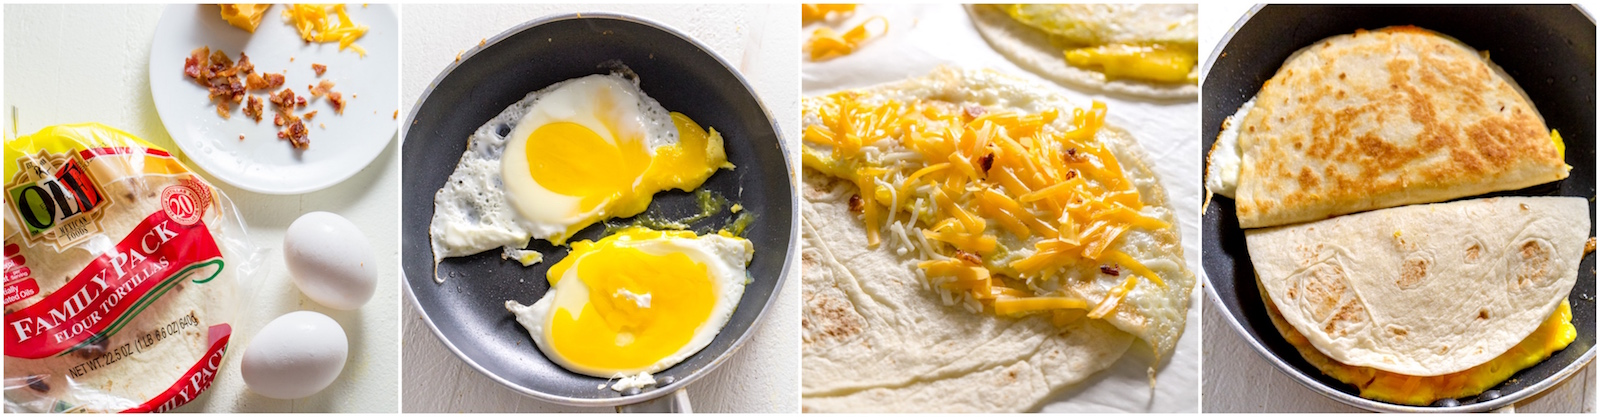 breakfast-quesadillas